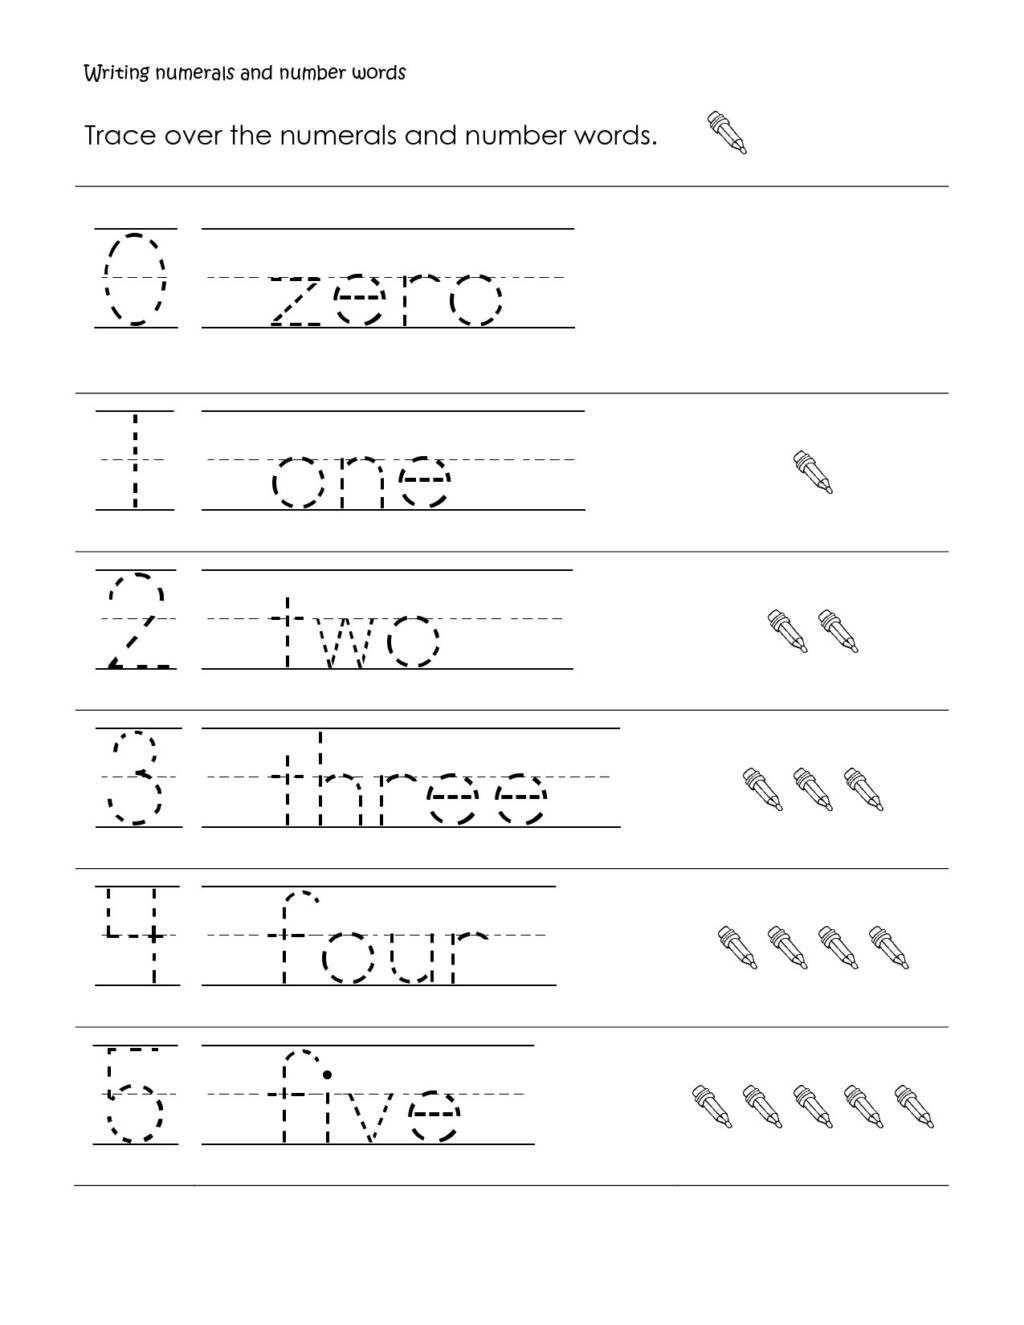 Number Word Worksheets for Kindergarten Worksheet Beginning Writing Activities forgarten Numbers